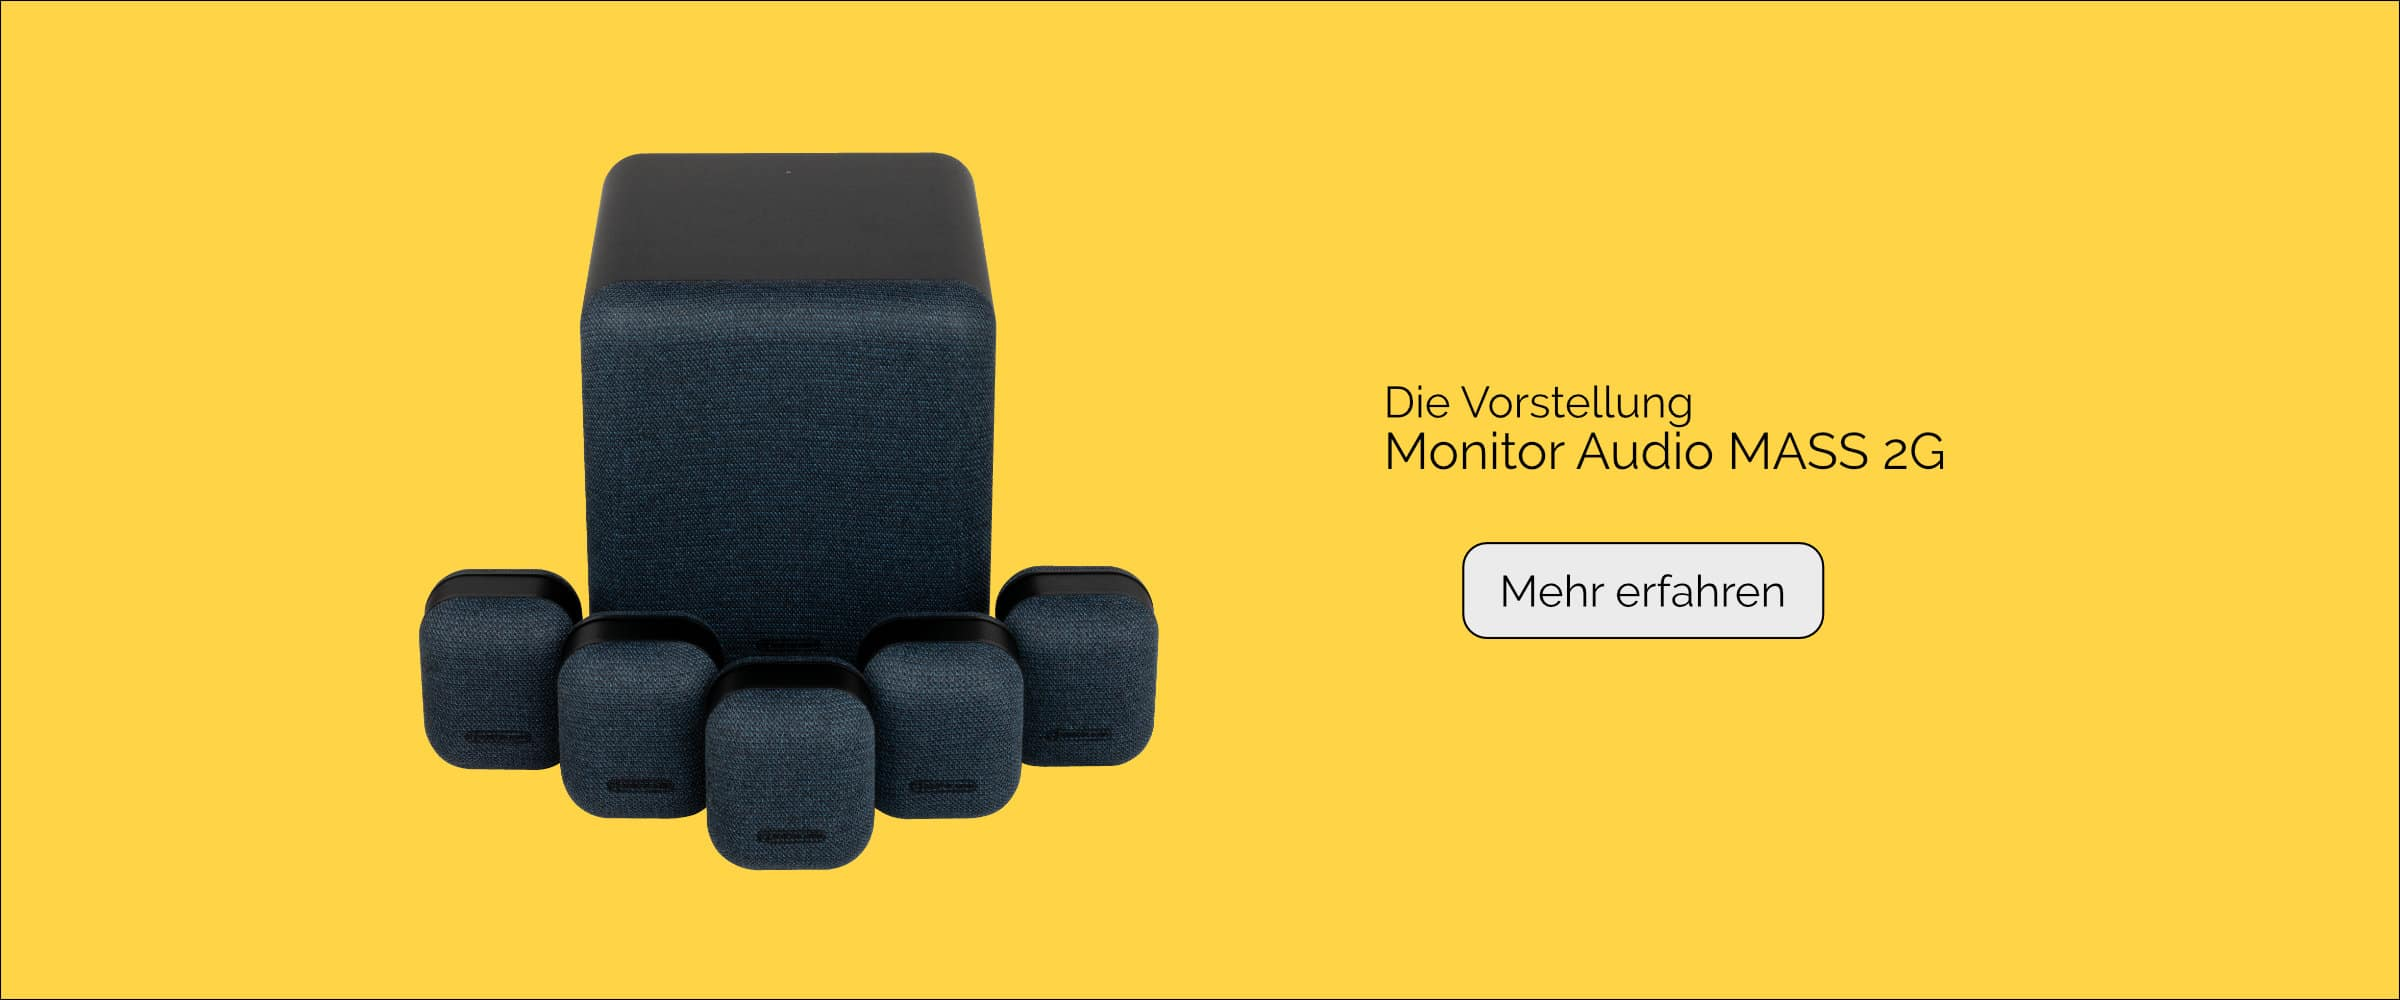 Monitor Audio MASS 2G-Banner